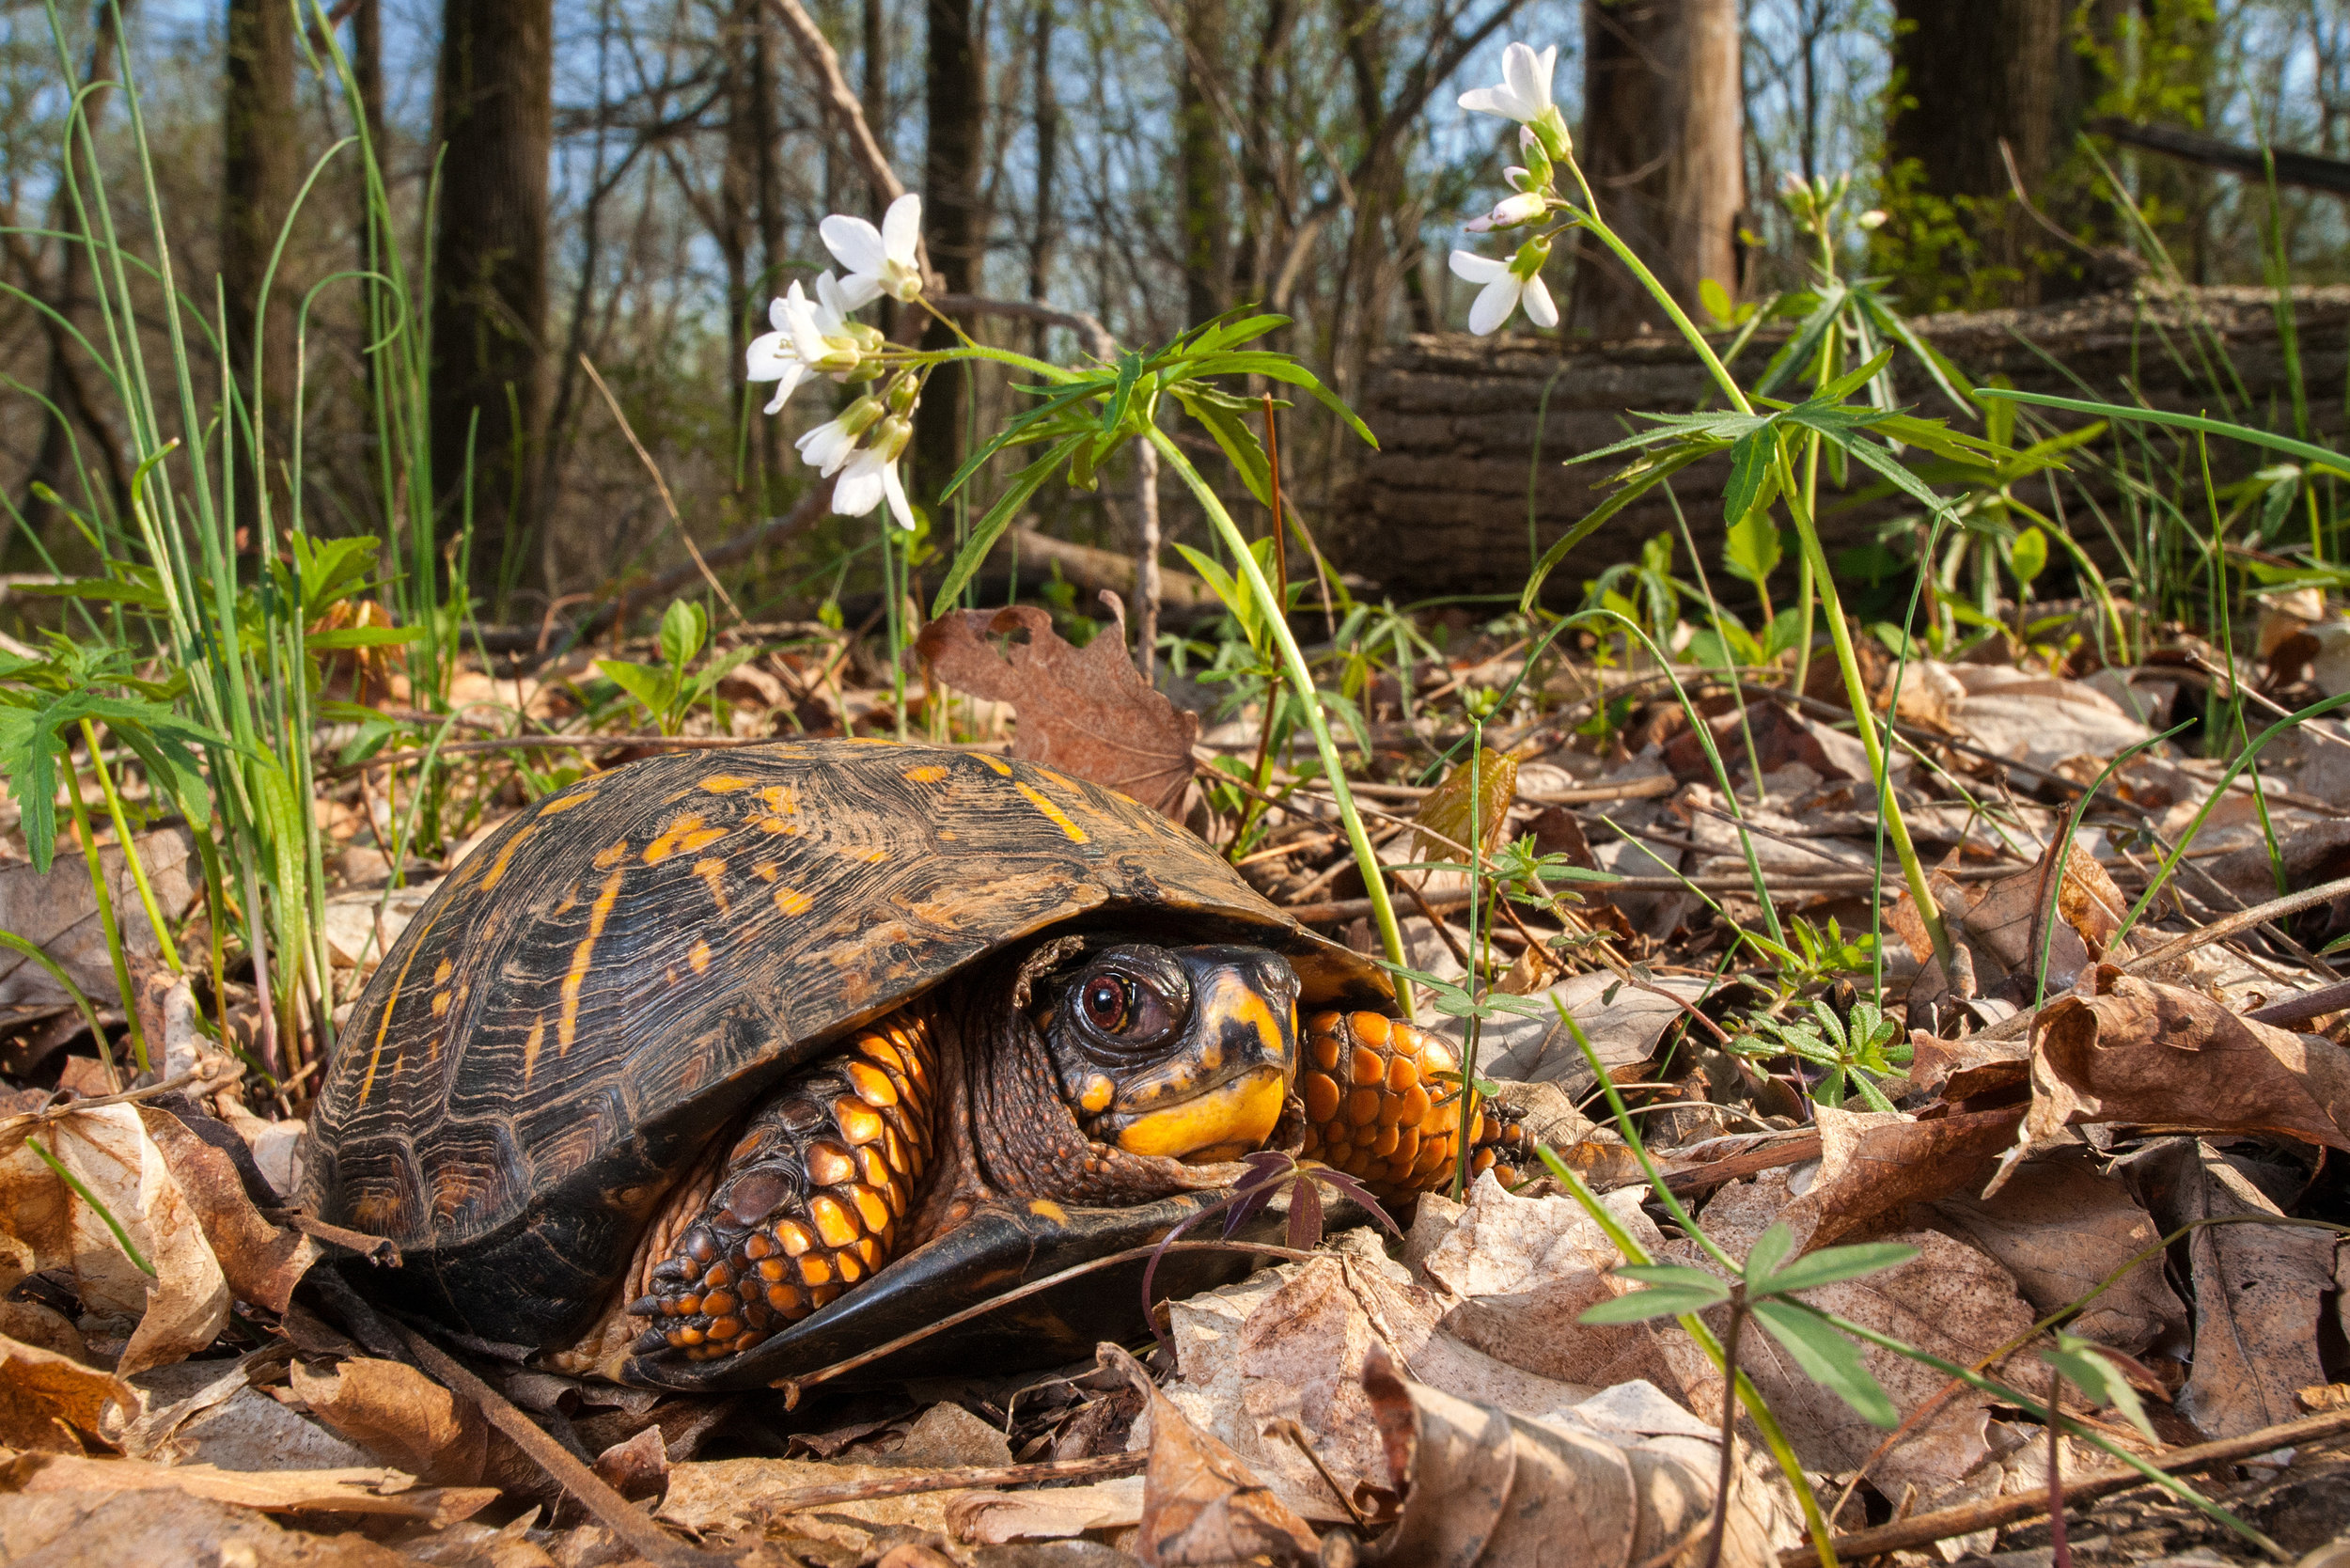 You can make sure that turtles, and other wildlife, have a place to call home…forever. Critical habitat, throughout the county, is facing development pressure that will eliminate habitat for these beautiful reptiles.